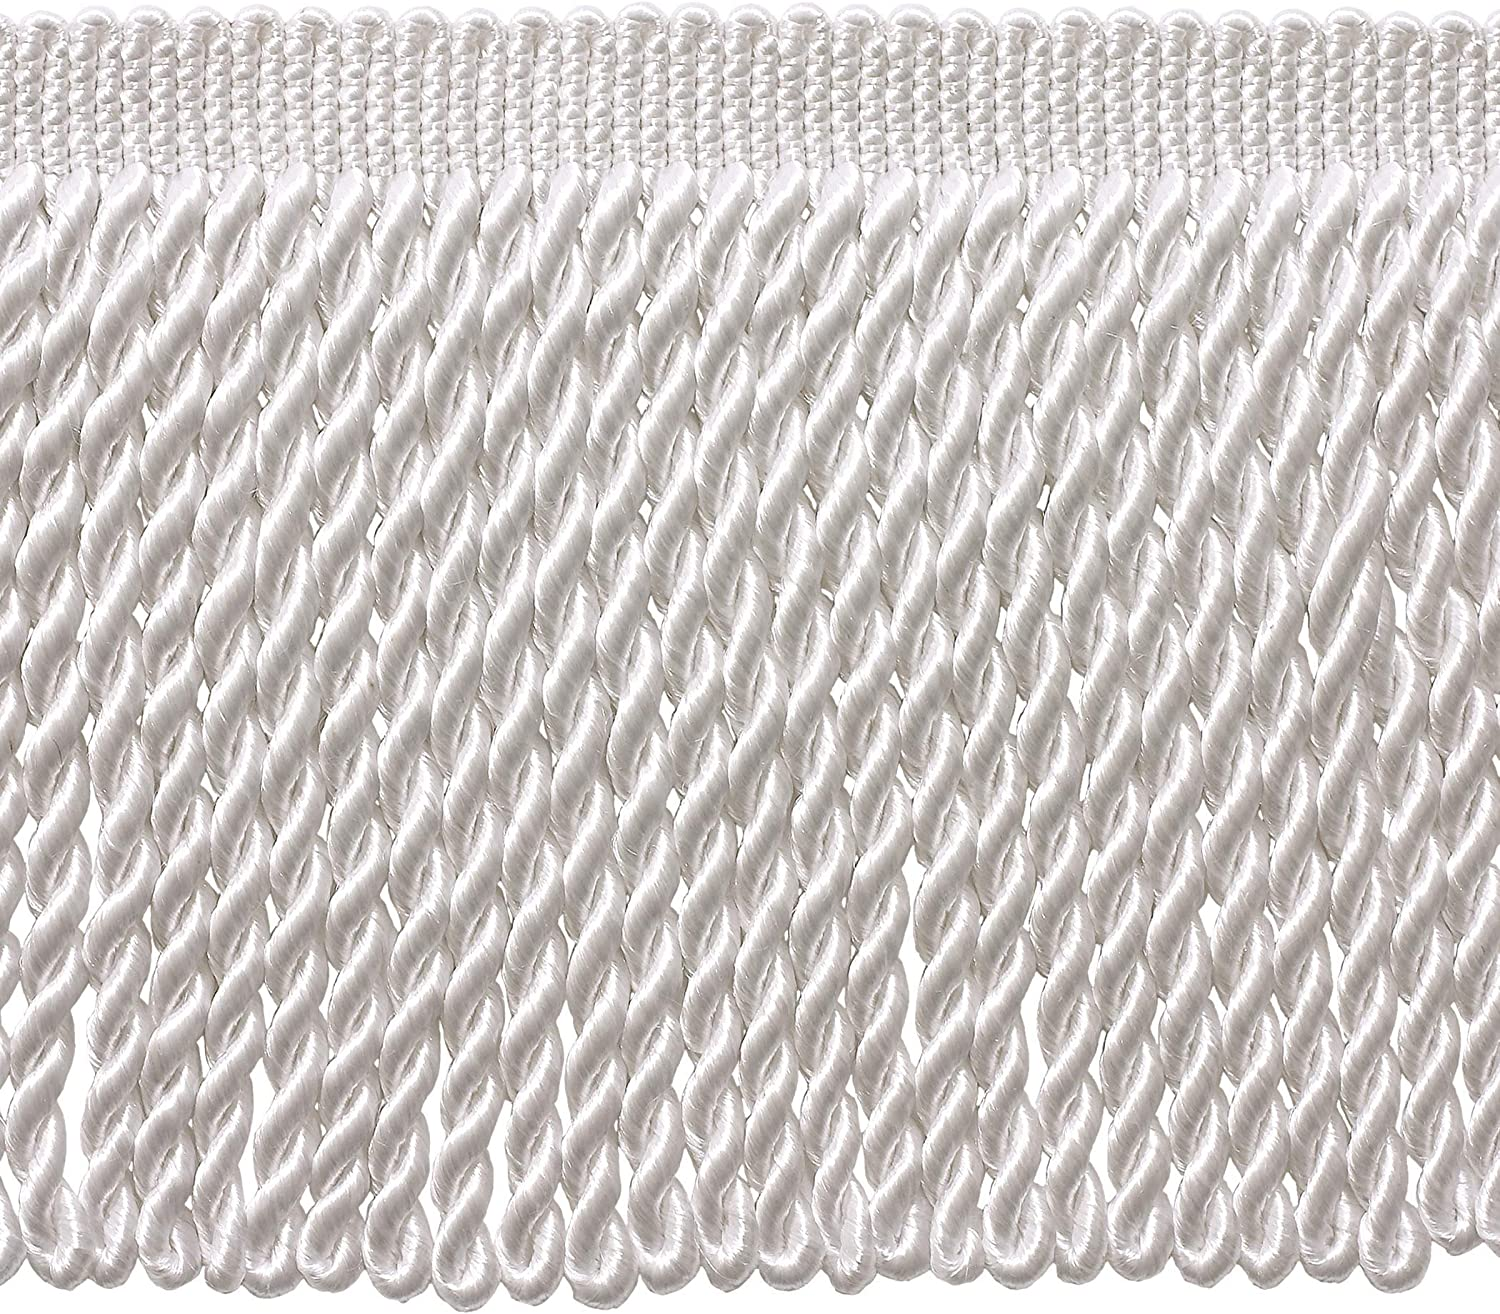 DÉCOPRO 5 Yard Value Pack - 6 White sold out Long Popular products Inch Fringe Bullion Tri